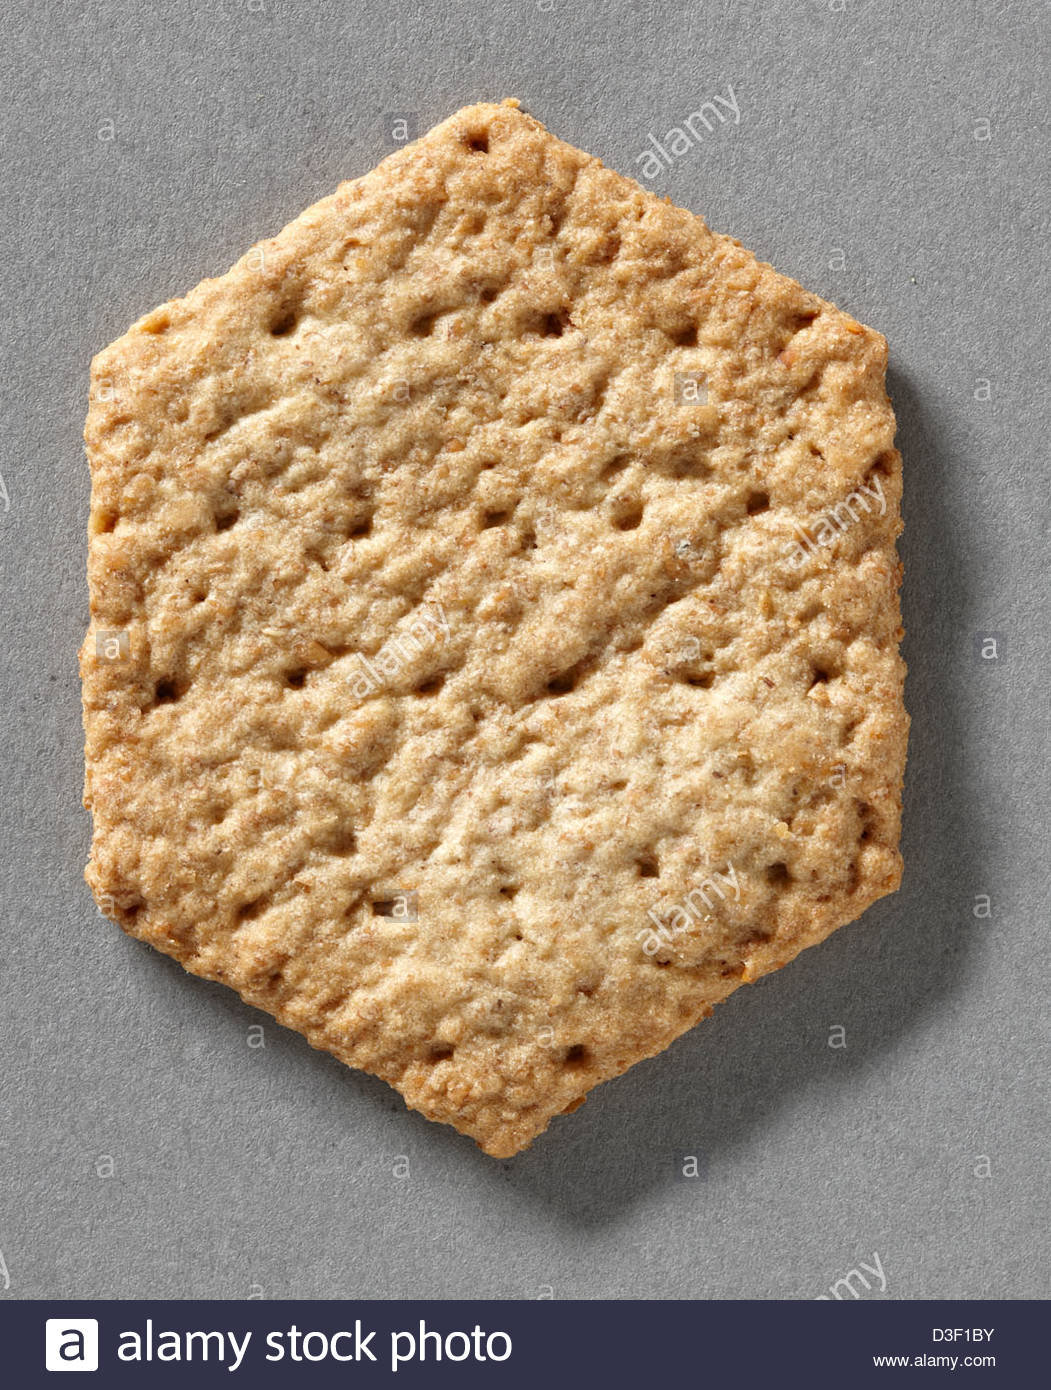 Hexagonal baked savory biscuit for cheese - Stock Image